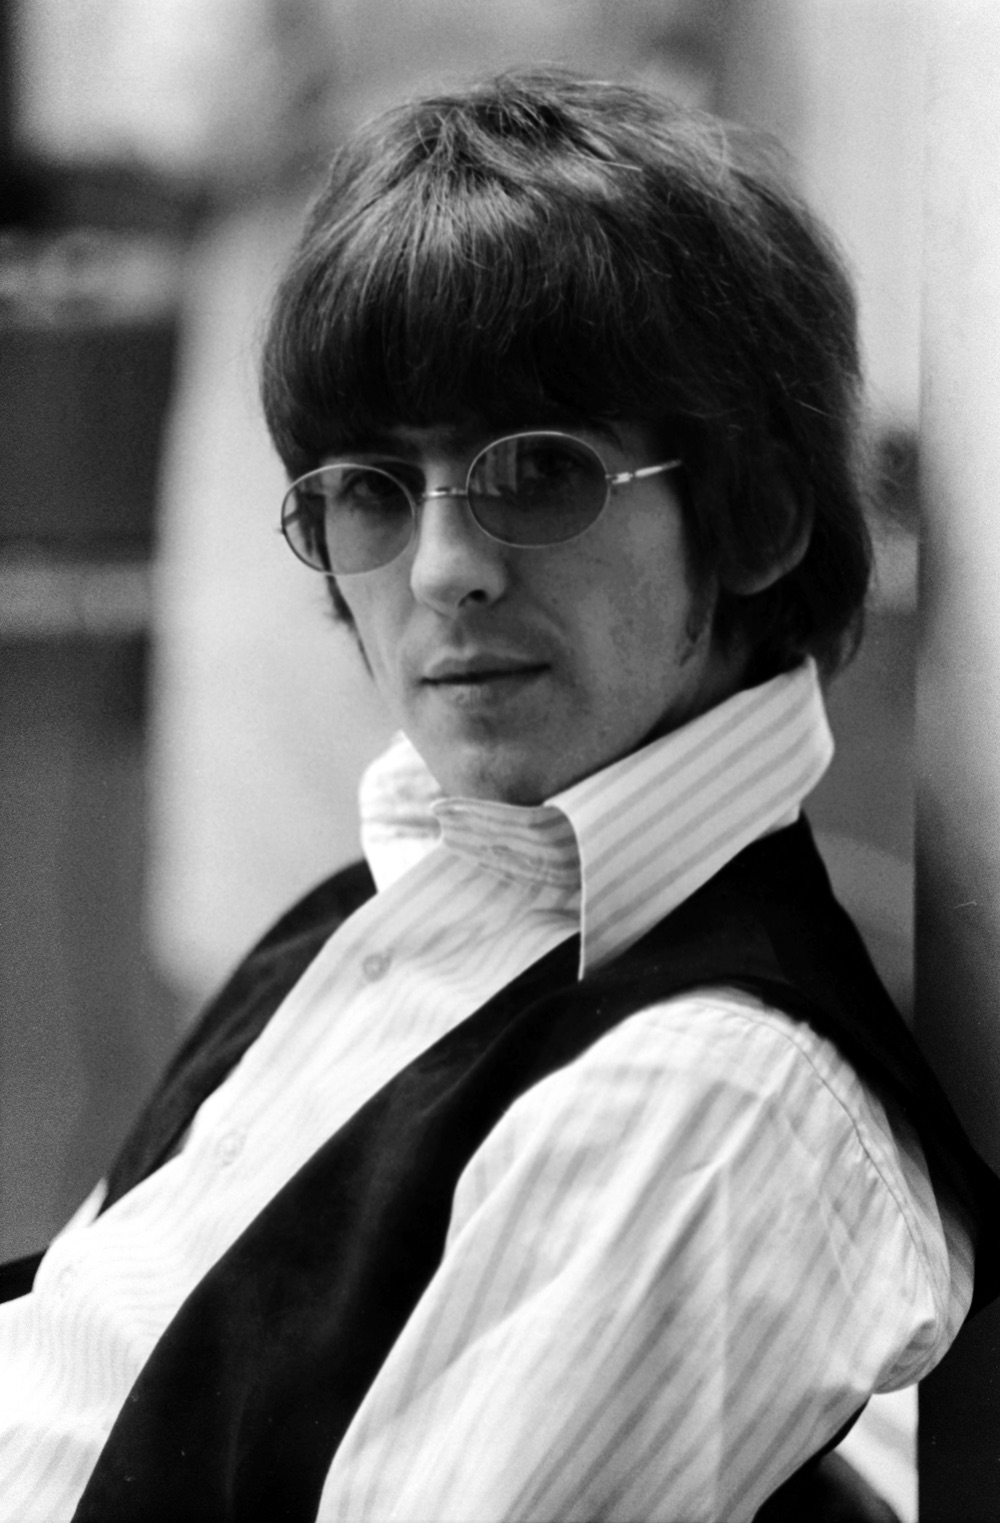 George Harrison looking suave while recording Revolver, 1966.